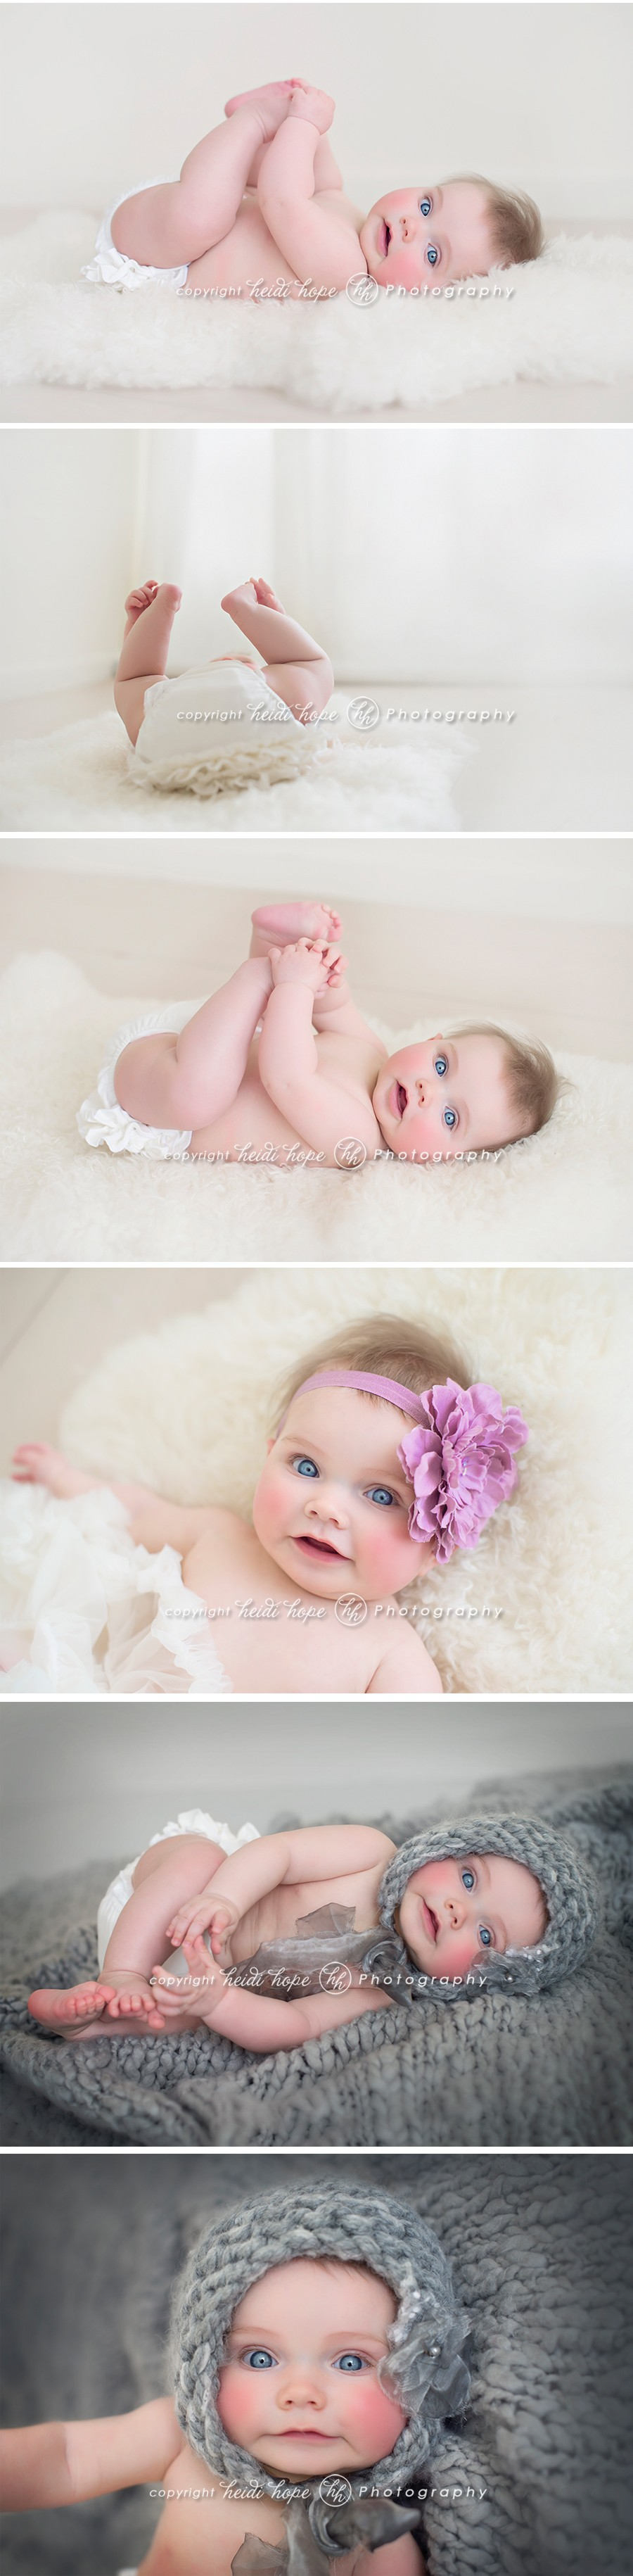 boston baby photographer 6 month portraits